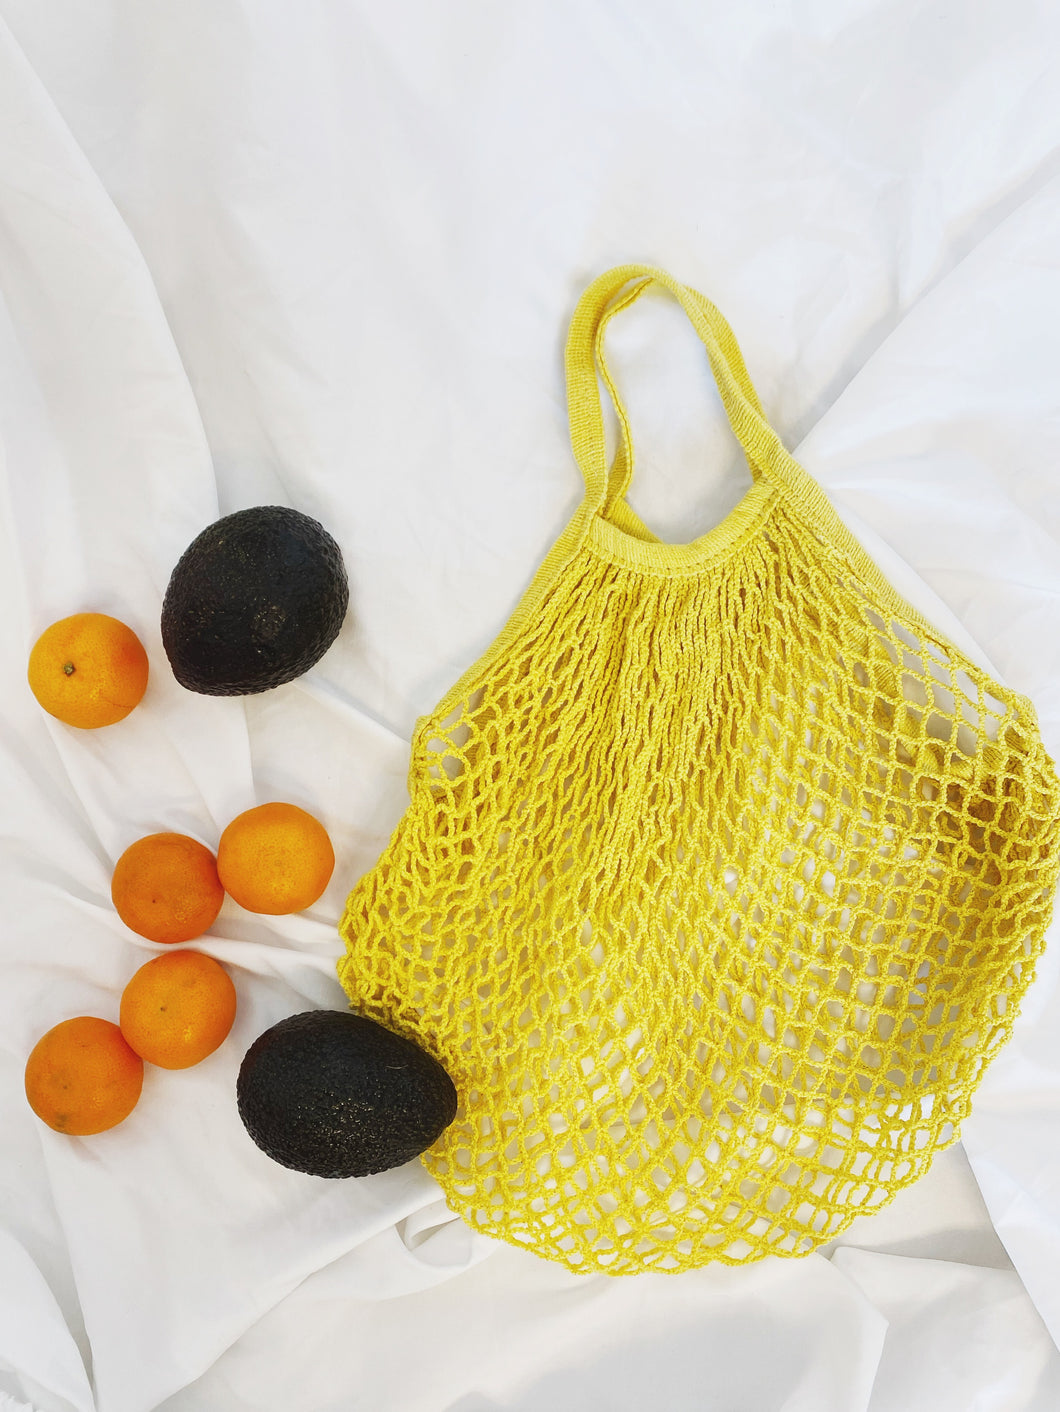 Hand-Dyed Tumeric Dandelion Market Tote